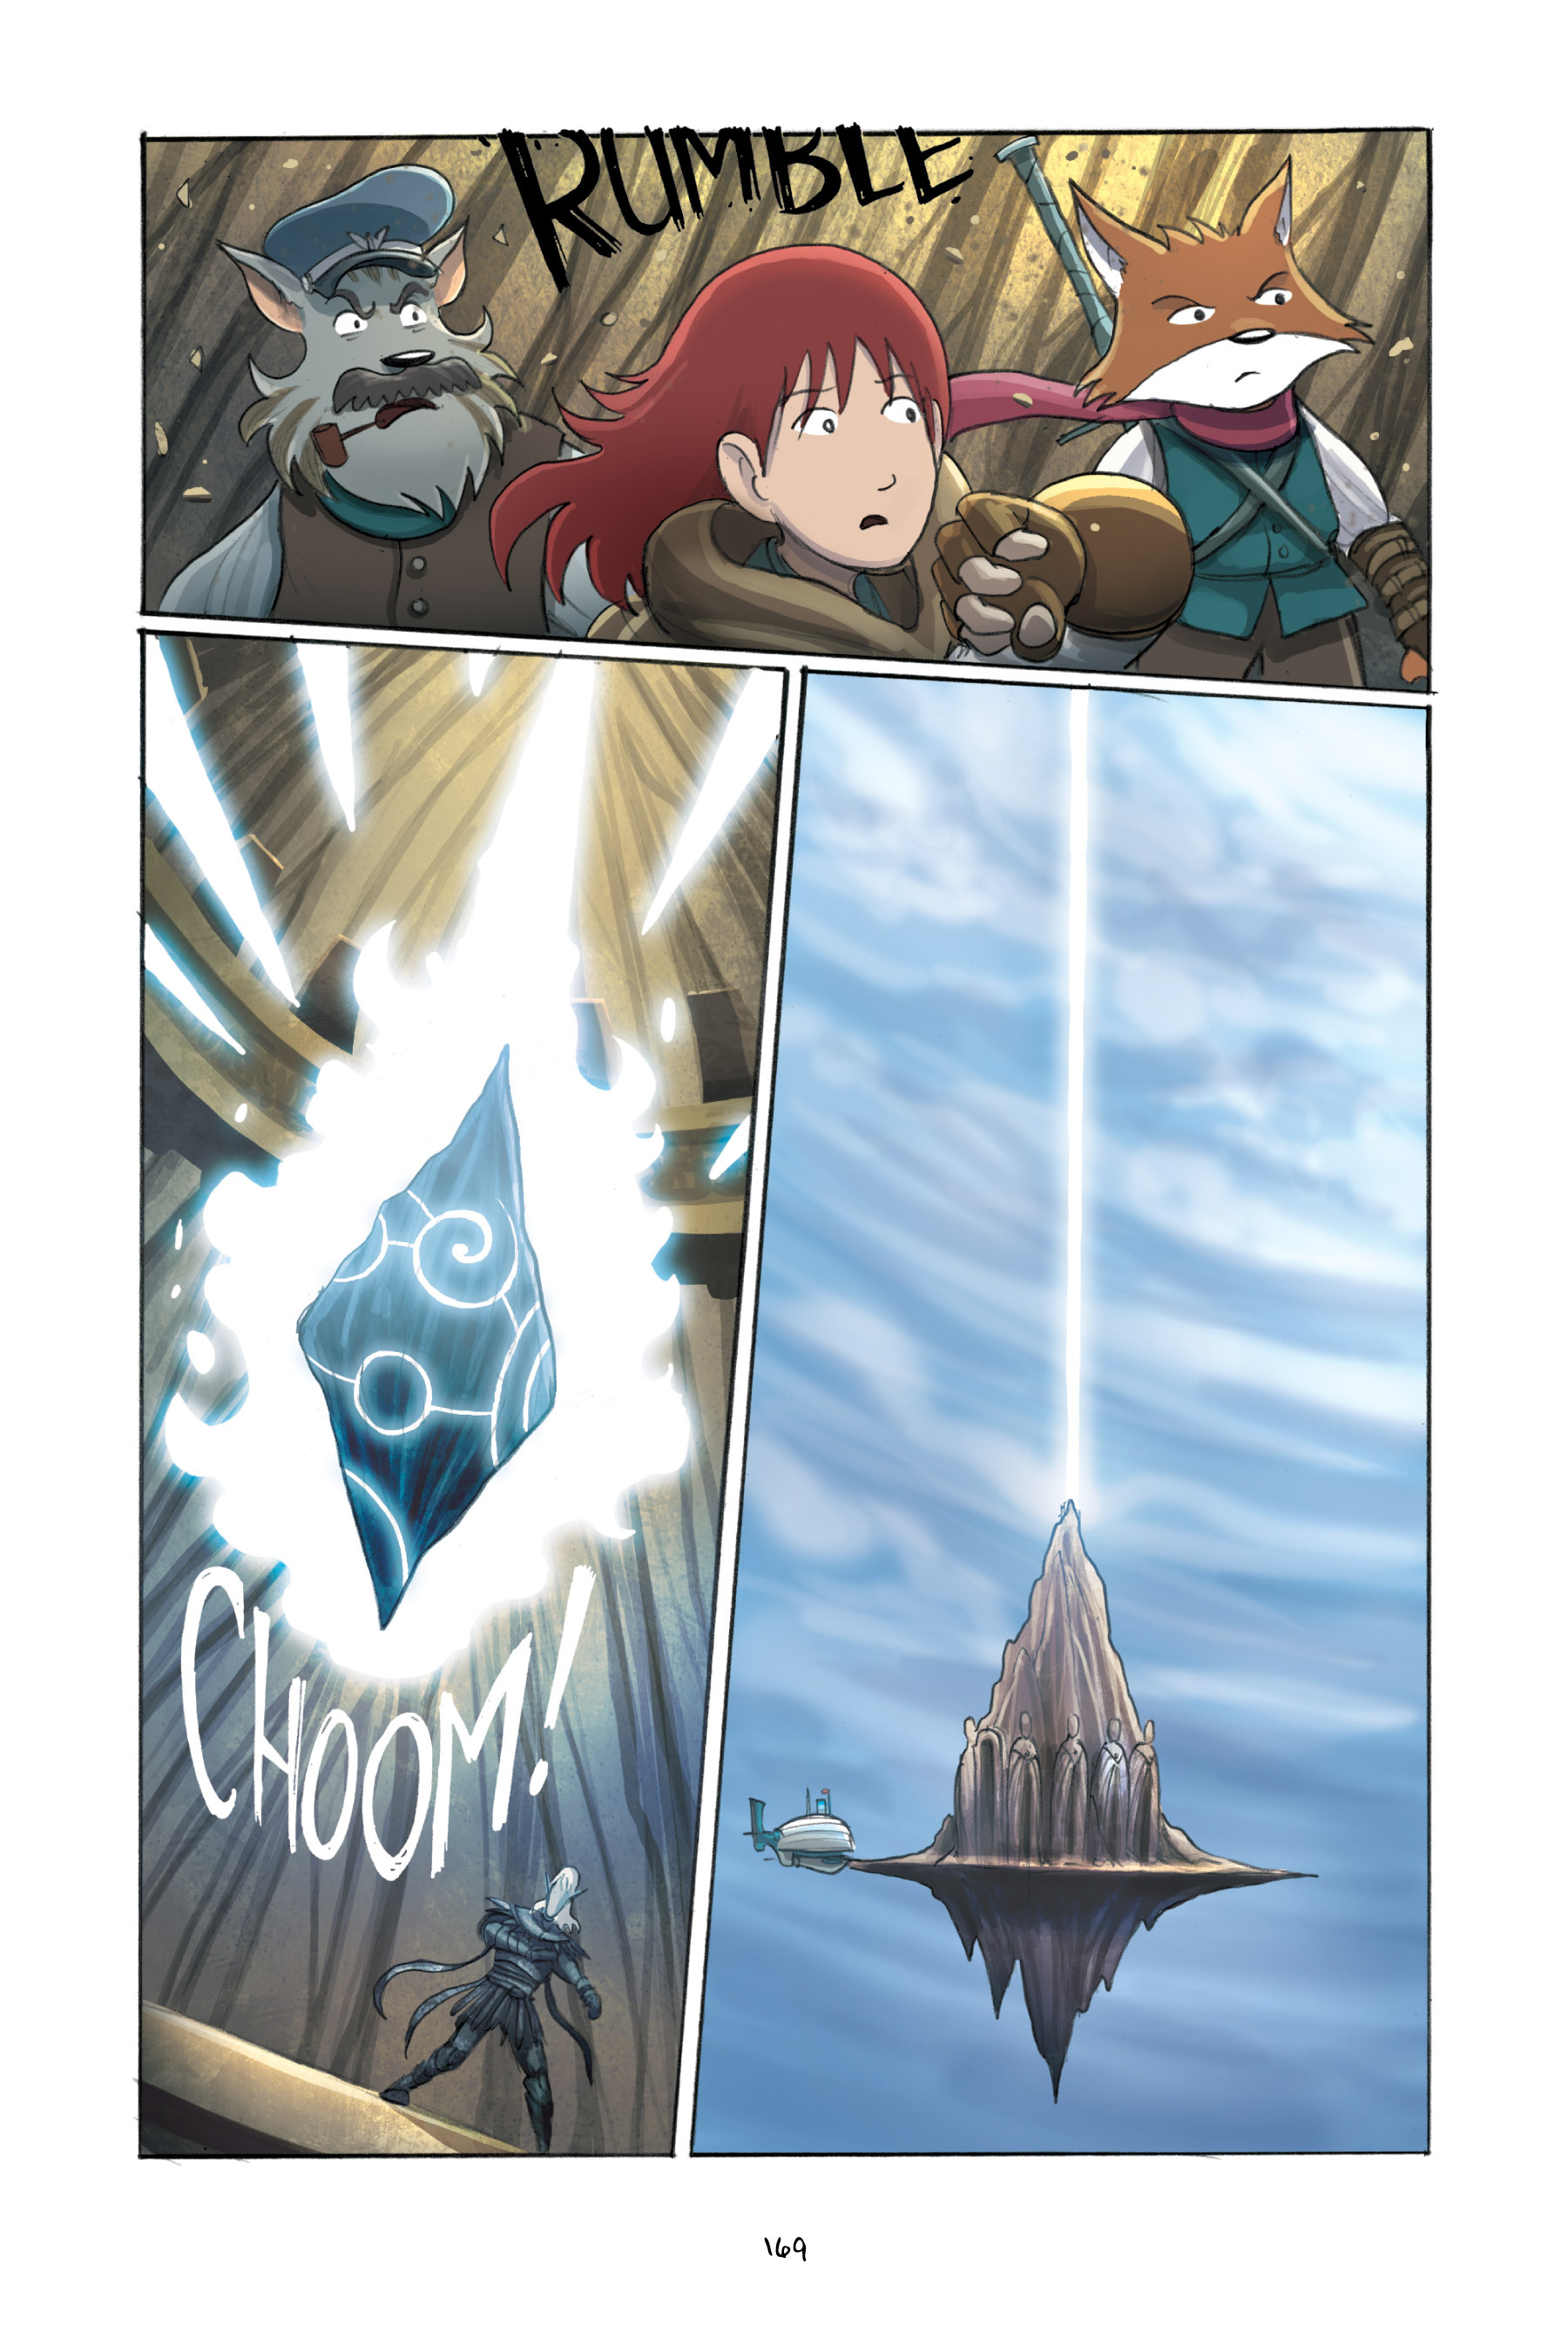 Read online Amulet comic -  Issue #3 - 165